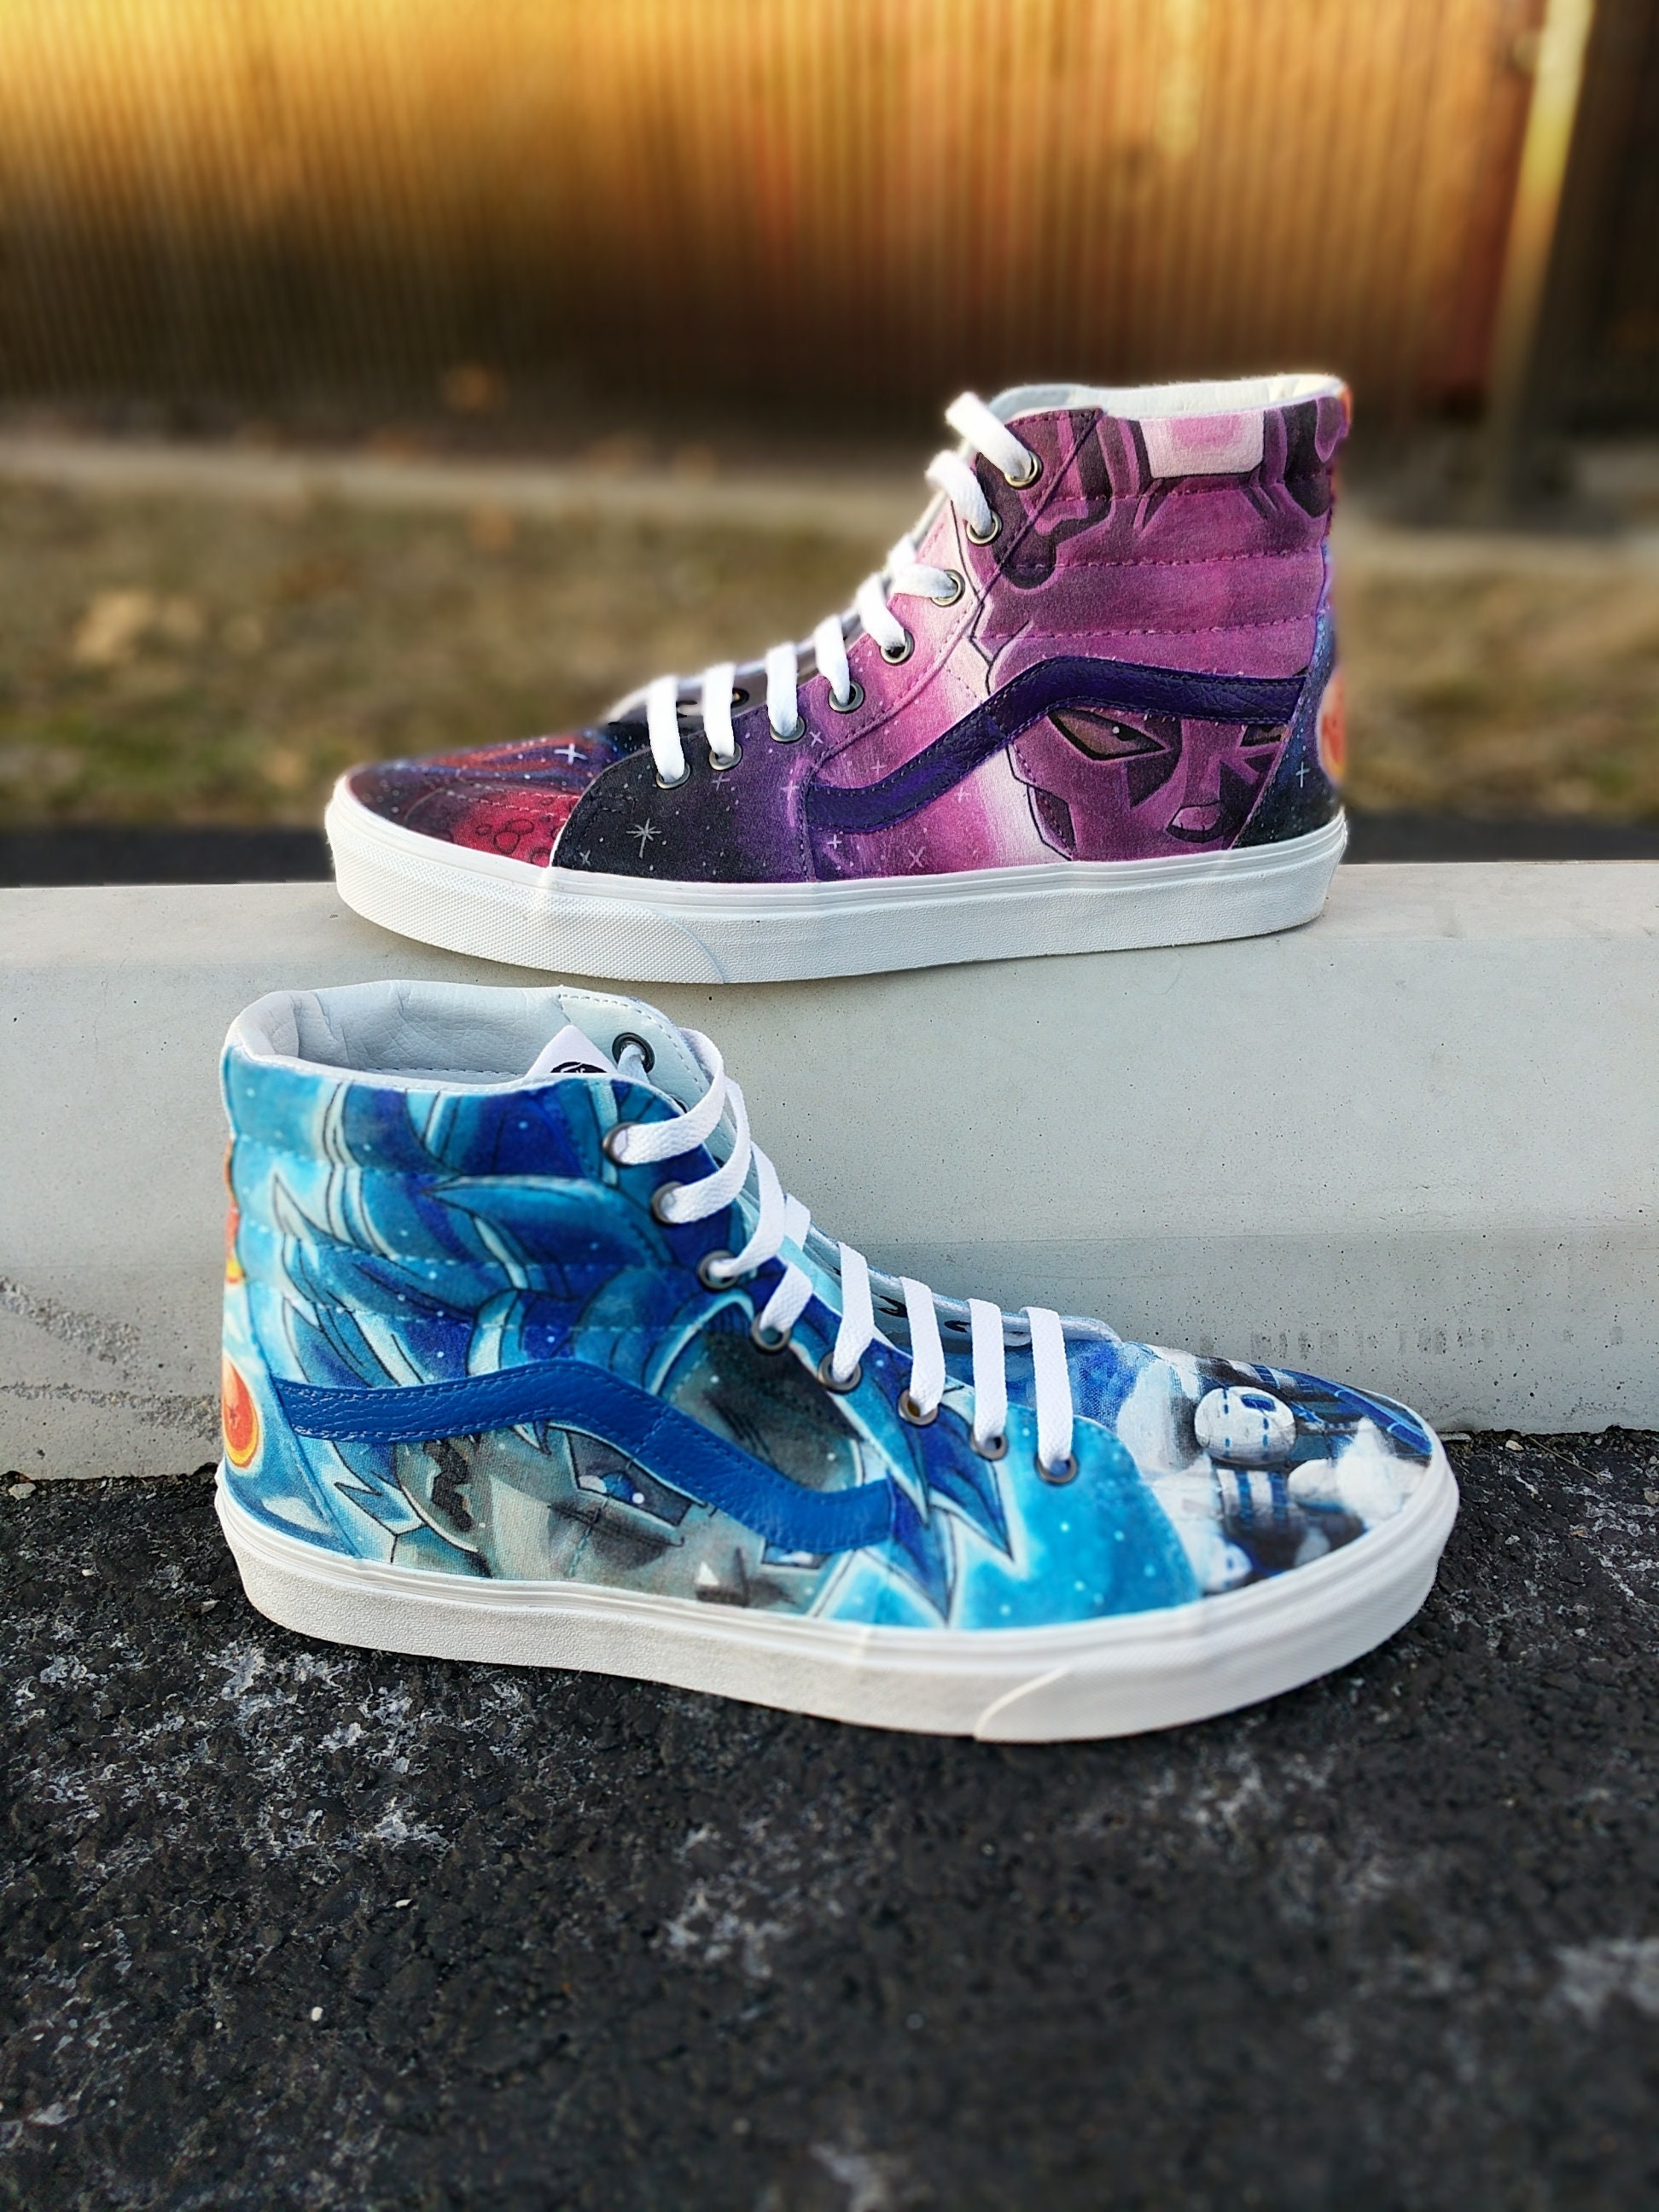 b2de2f3c4 Custom Dragon Ball Z Super SK8-Hi Vans Shoes